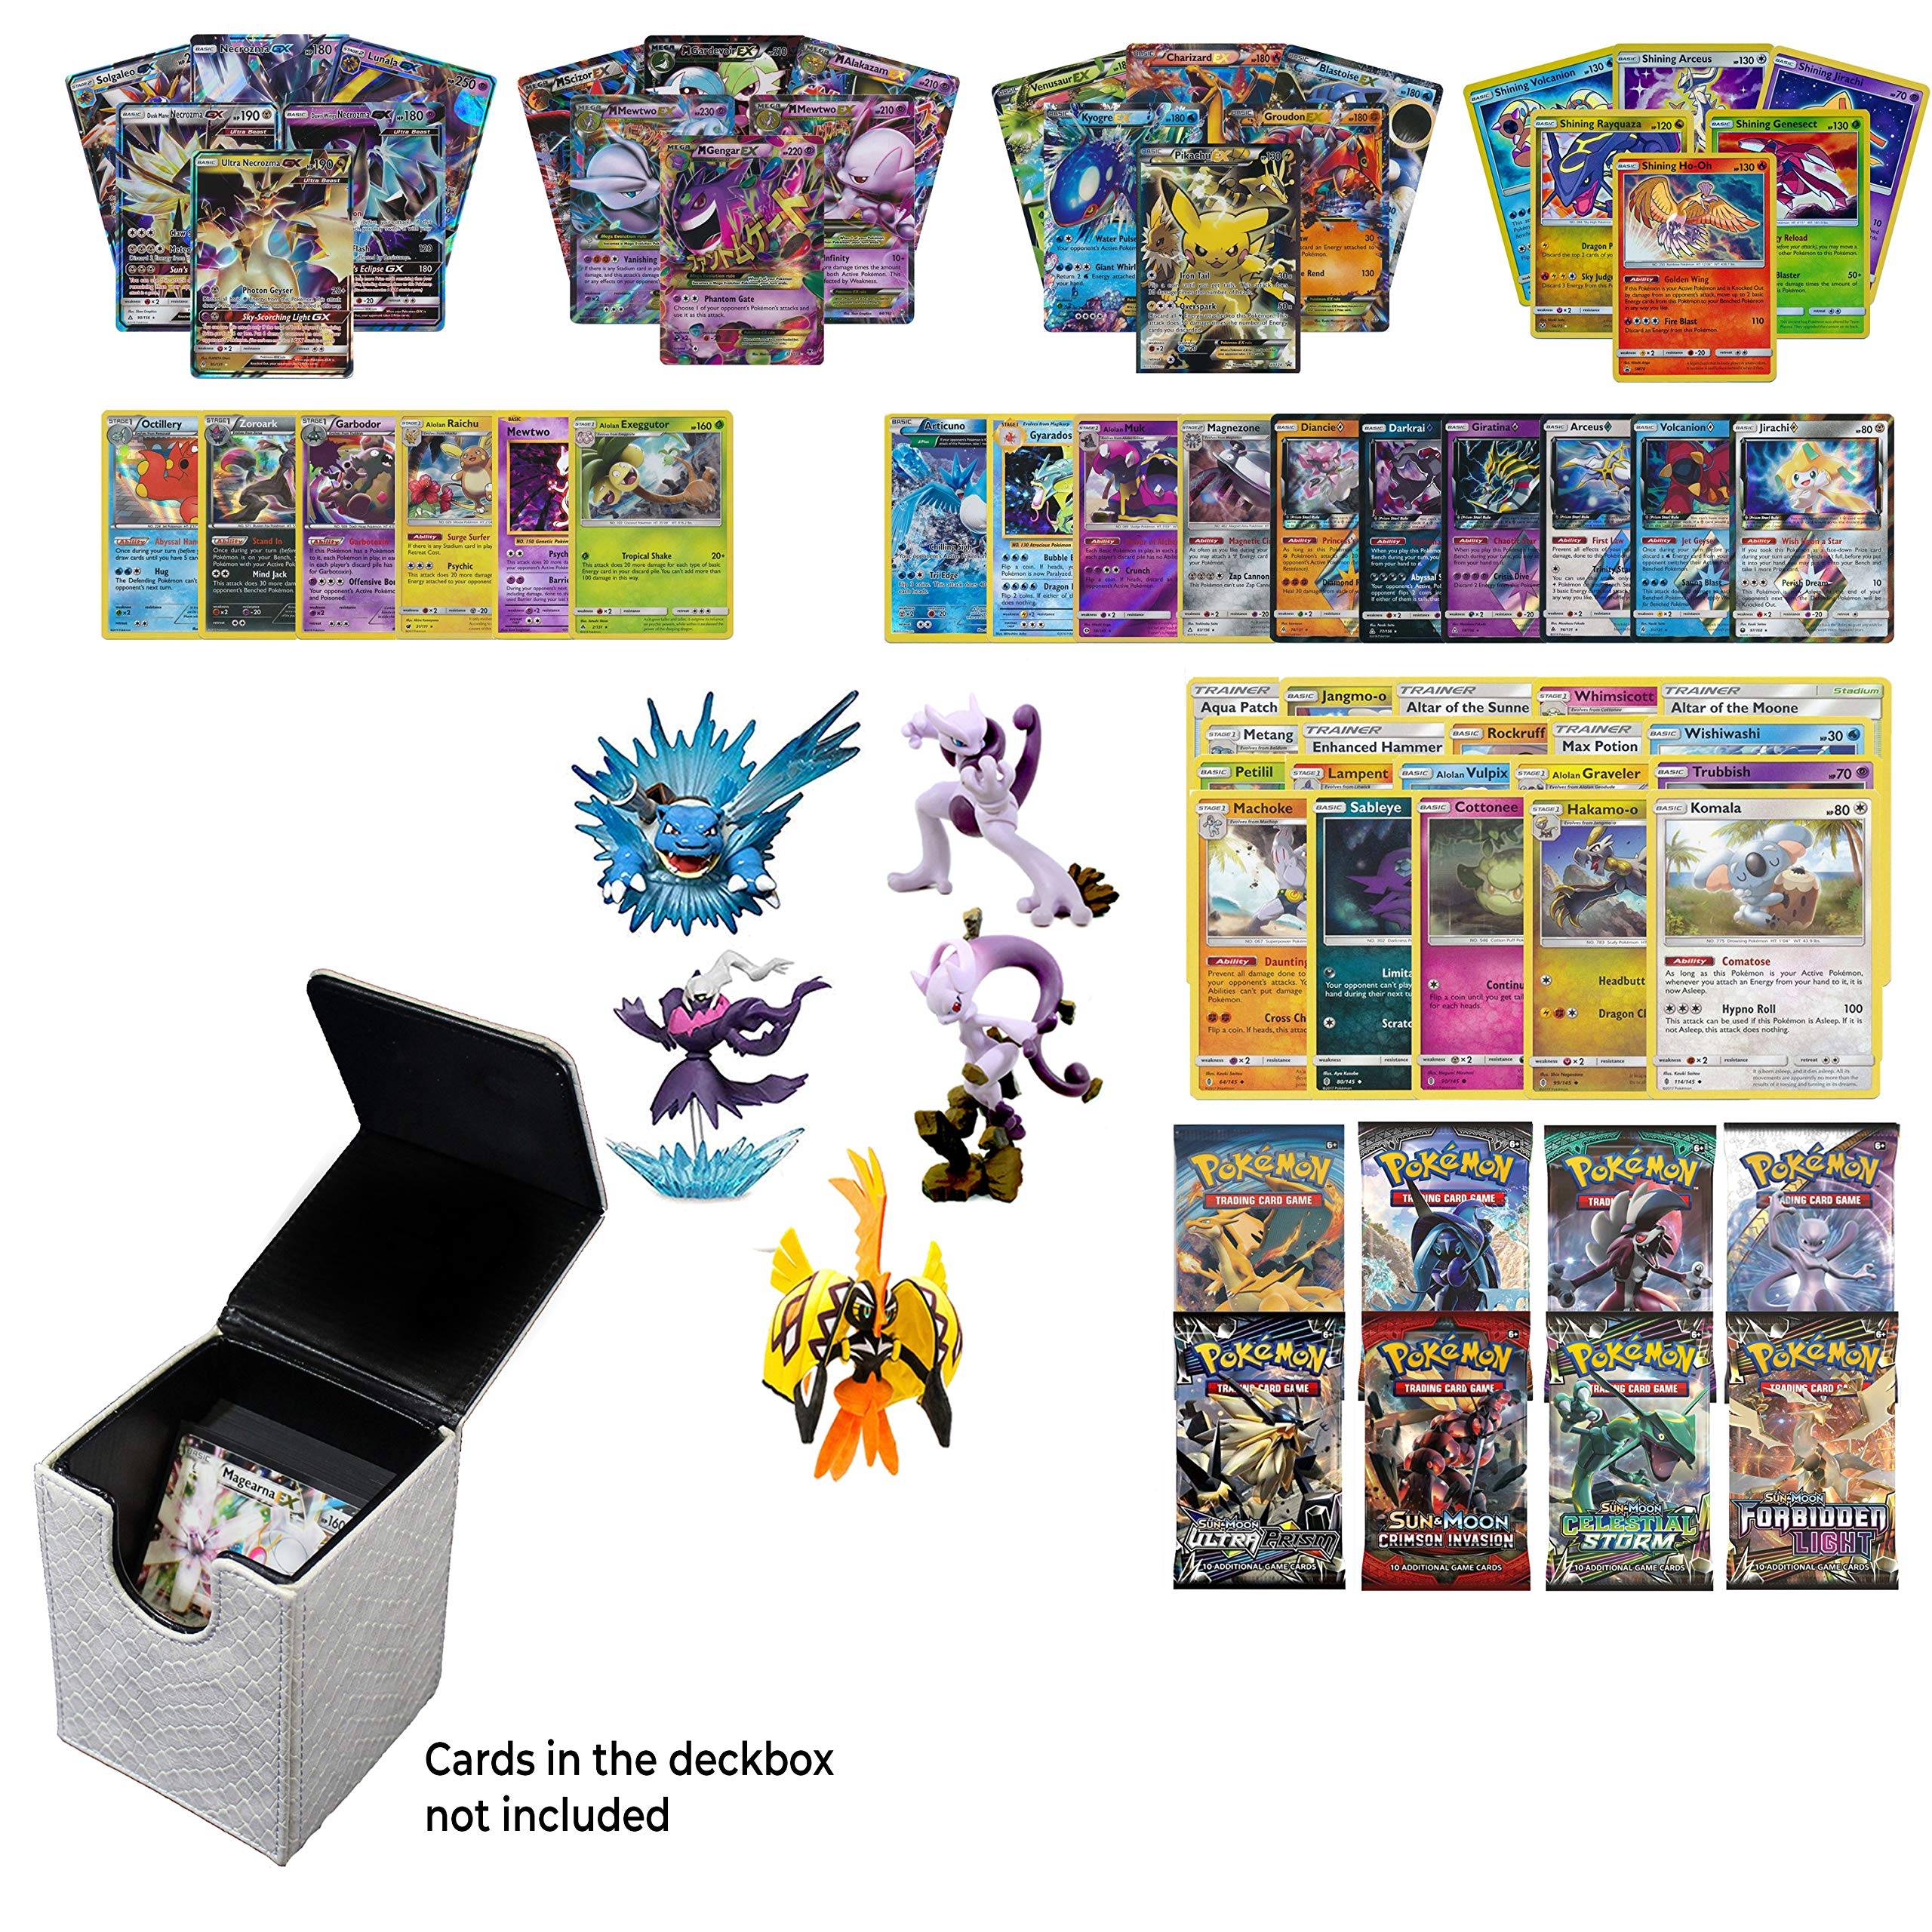 Playoly Pokemon Premium Collection 100 Cards with GX Mega EX Shining Holo 10 Rares 4 Booster Pack -White Dragonhide Deck Box- Figure